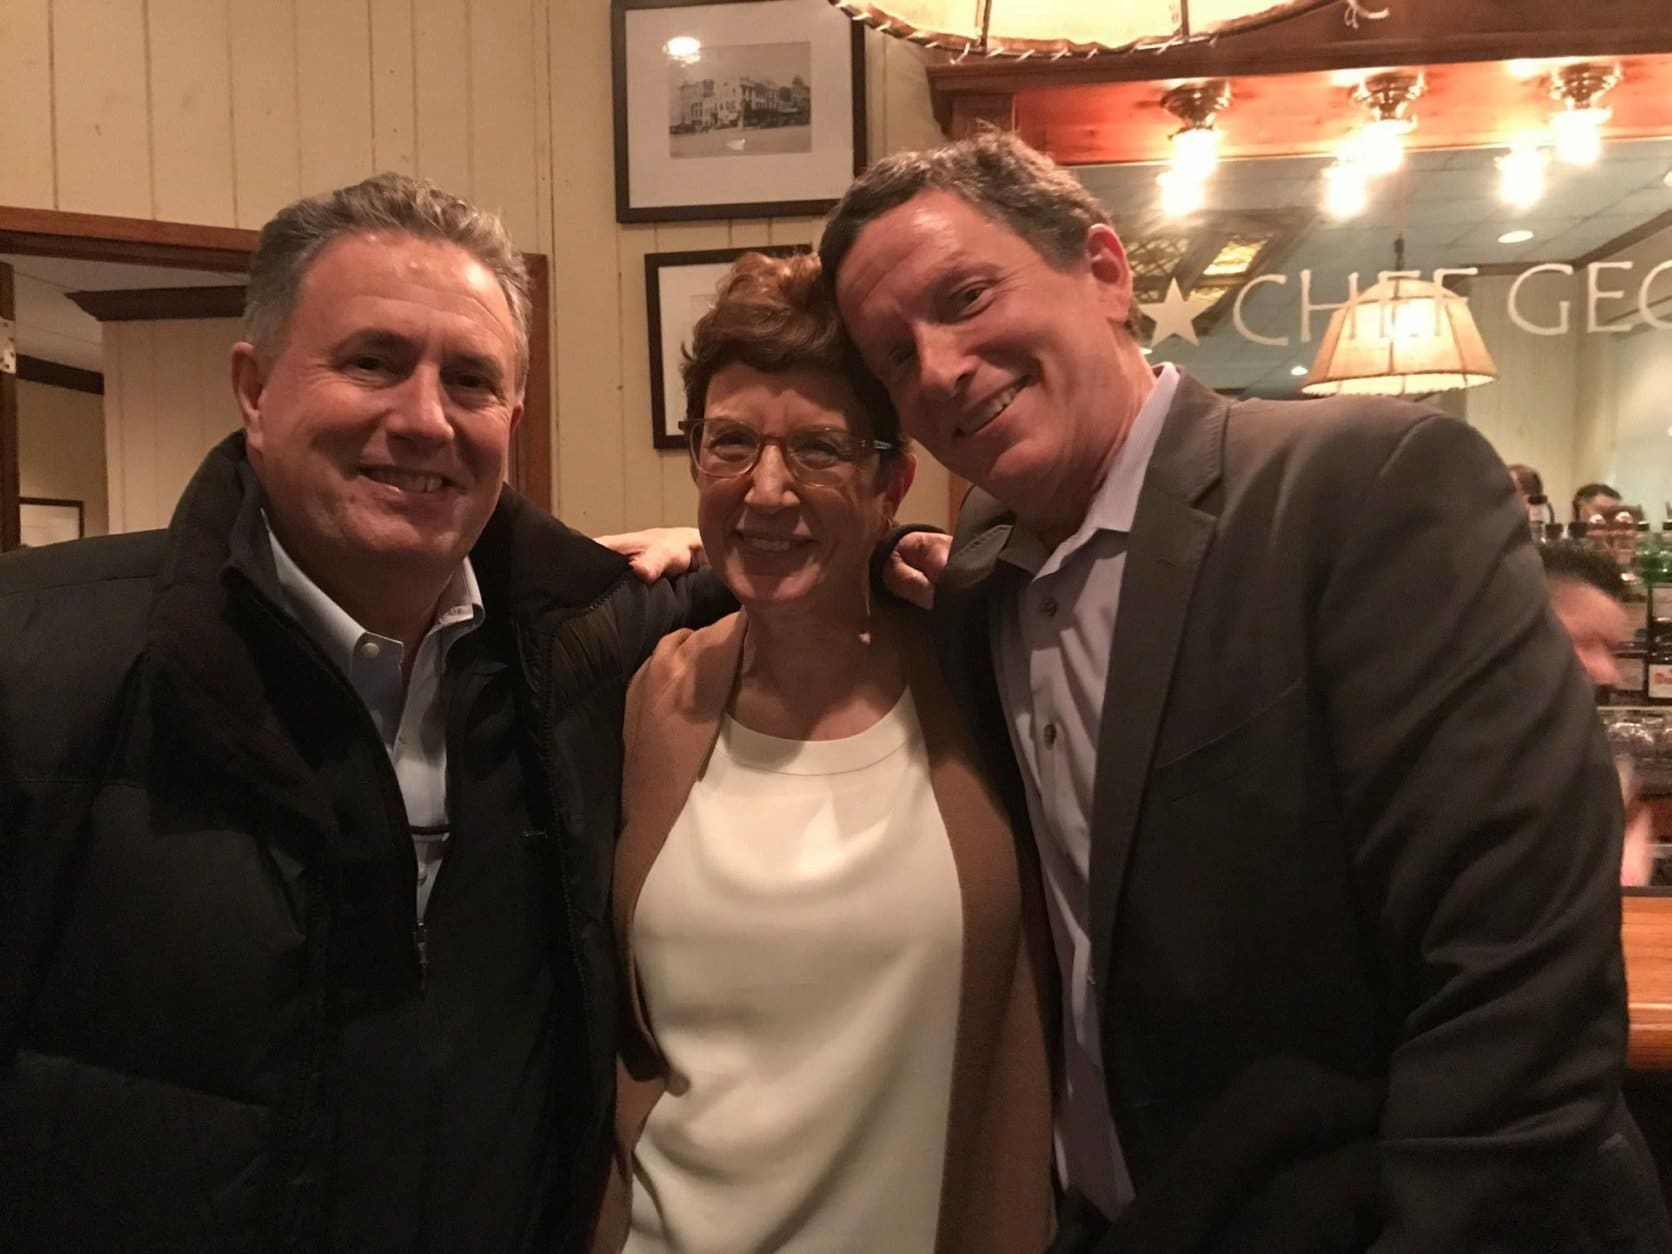 Paul Wagner, Judy Taub and Mark Segraves. (Courtesy Judy Taub)